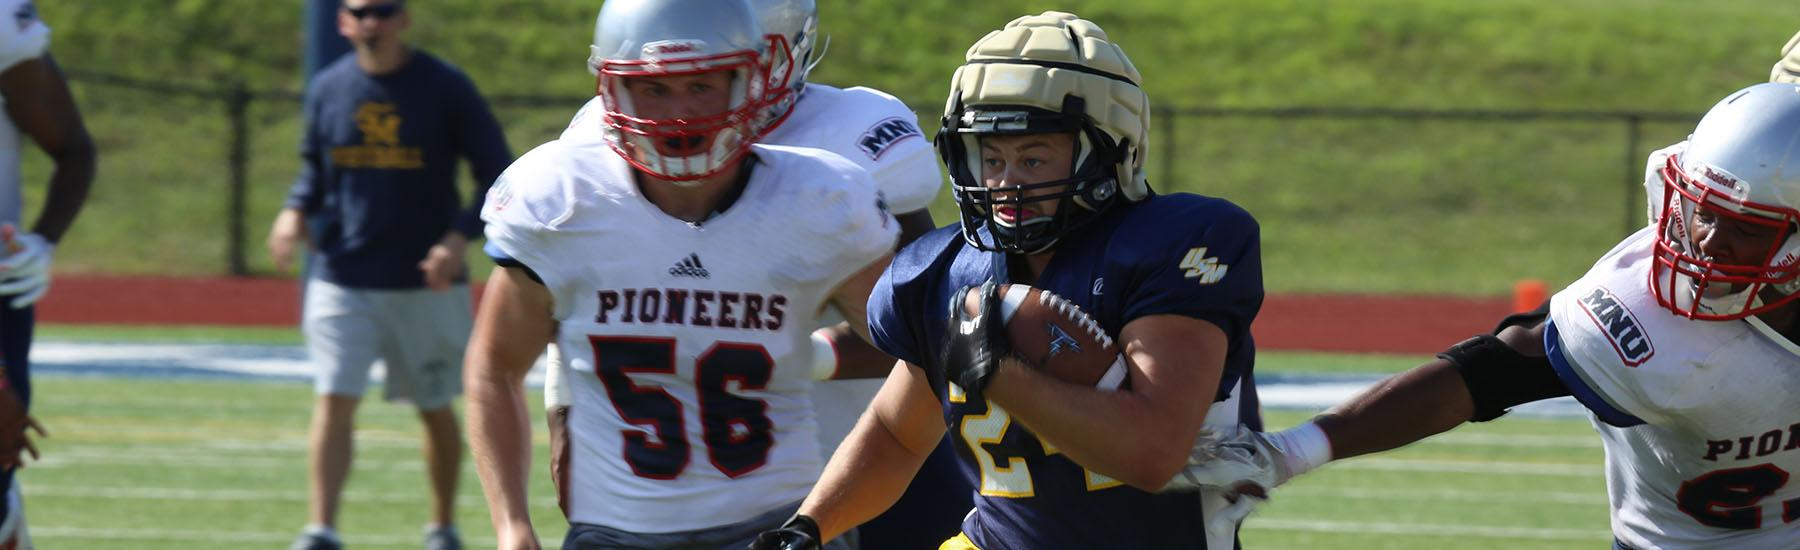 football holds scrimmage against mnu | university of saint mary